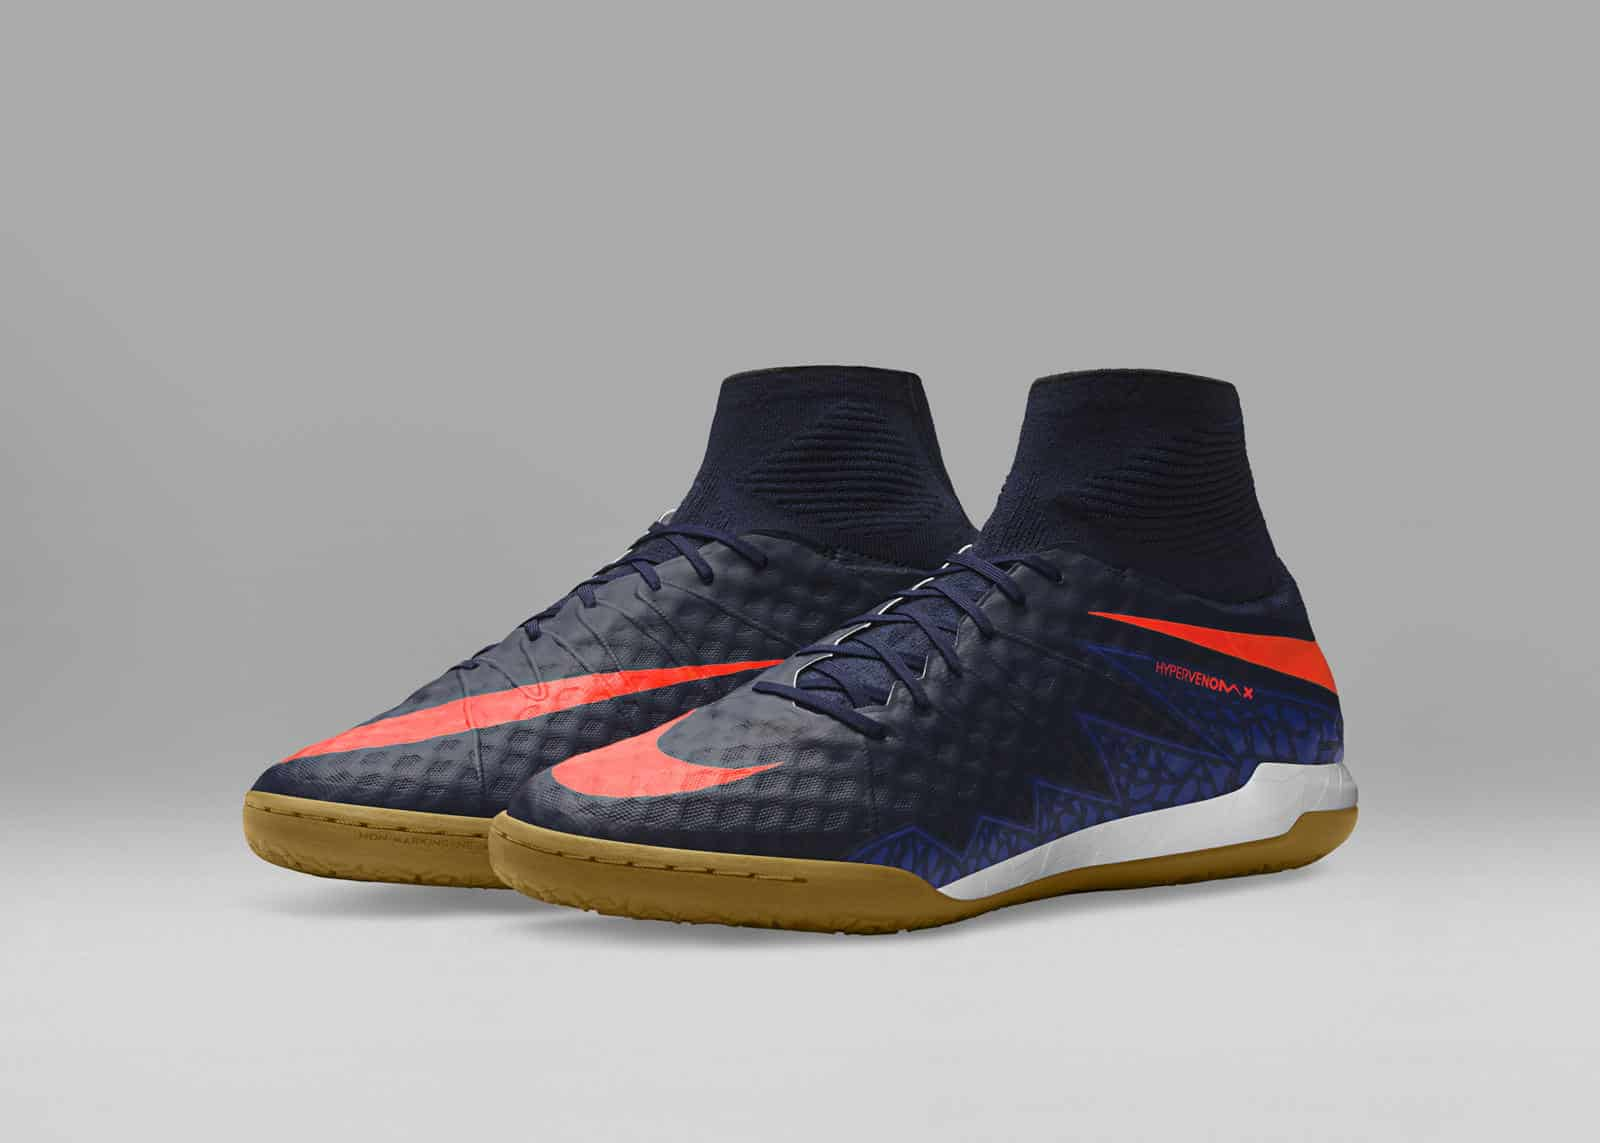 chaussure-football-nike-hypervenomx-futsal-pack-floodlights-2016-3